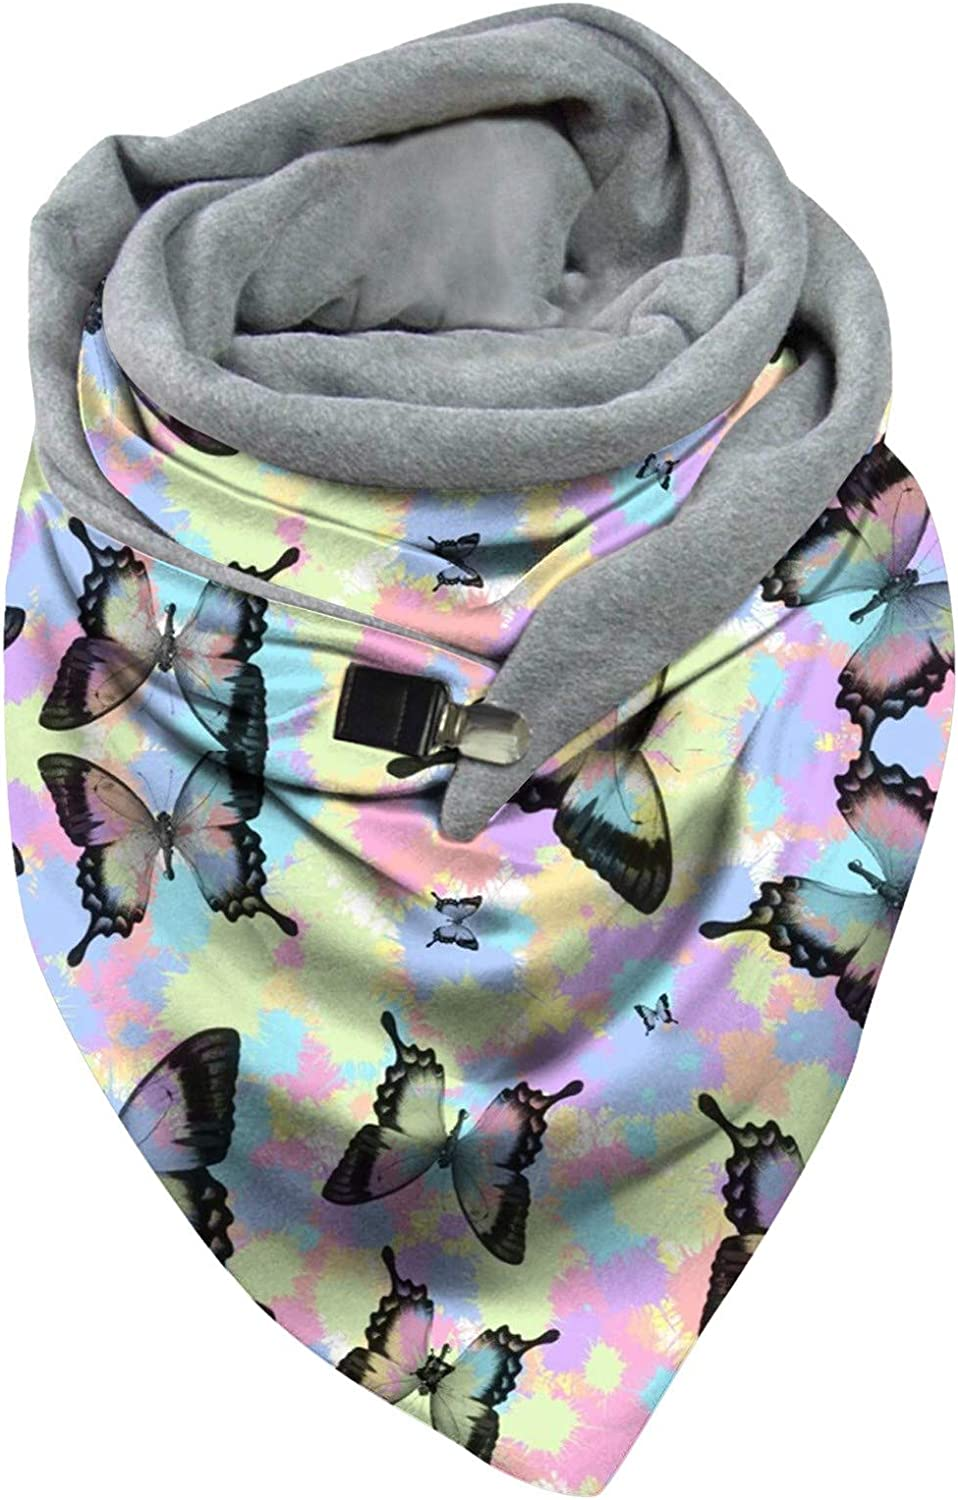 Mikey Store Cold Weather Scarves & Wraps Tie Dye Whirlpool Butterfly Star Starry Sky Print,Multiple Ways to Wear